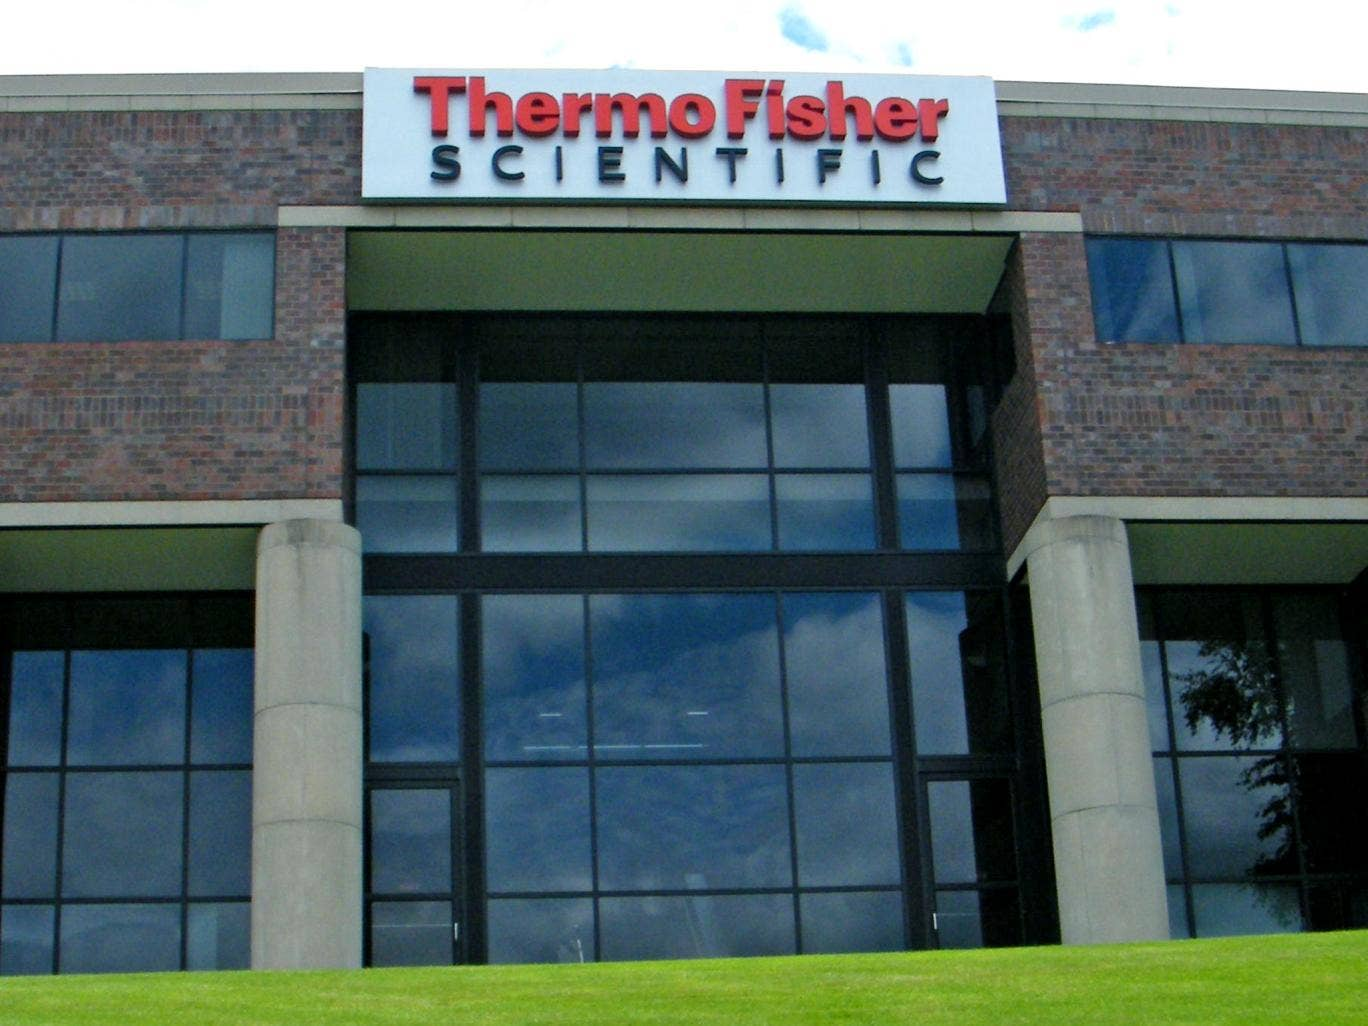 Thermo Fisher headquarters in Massachusetts